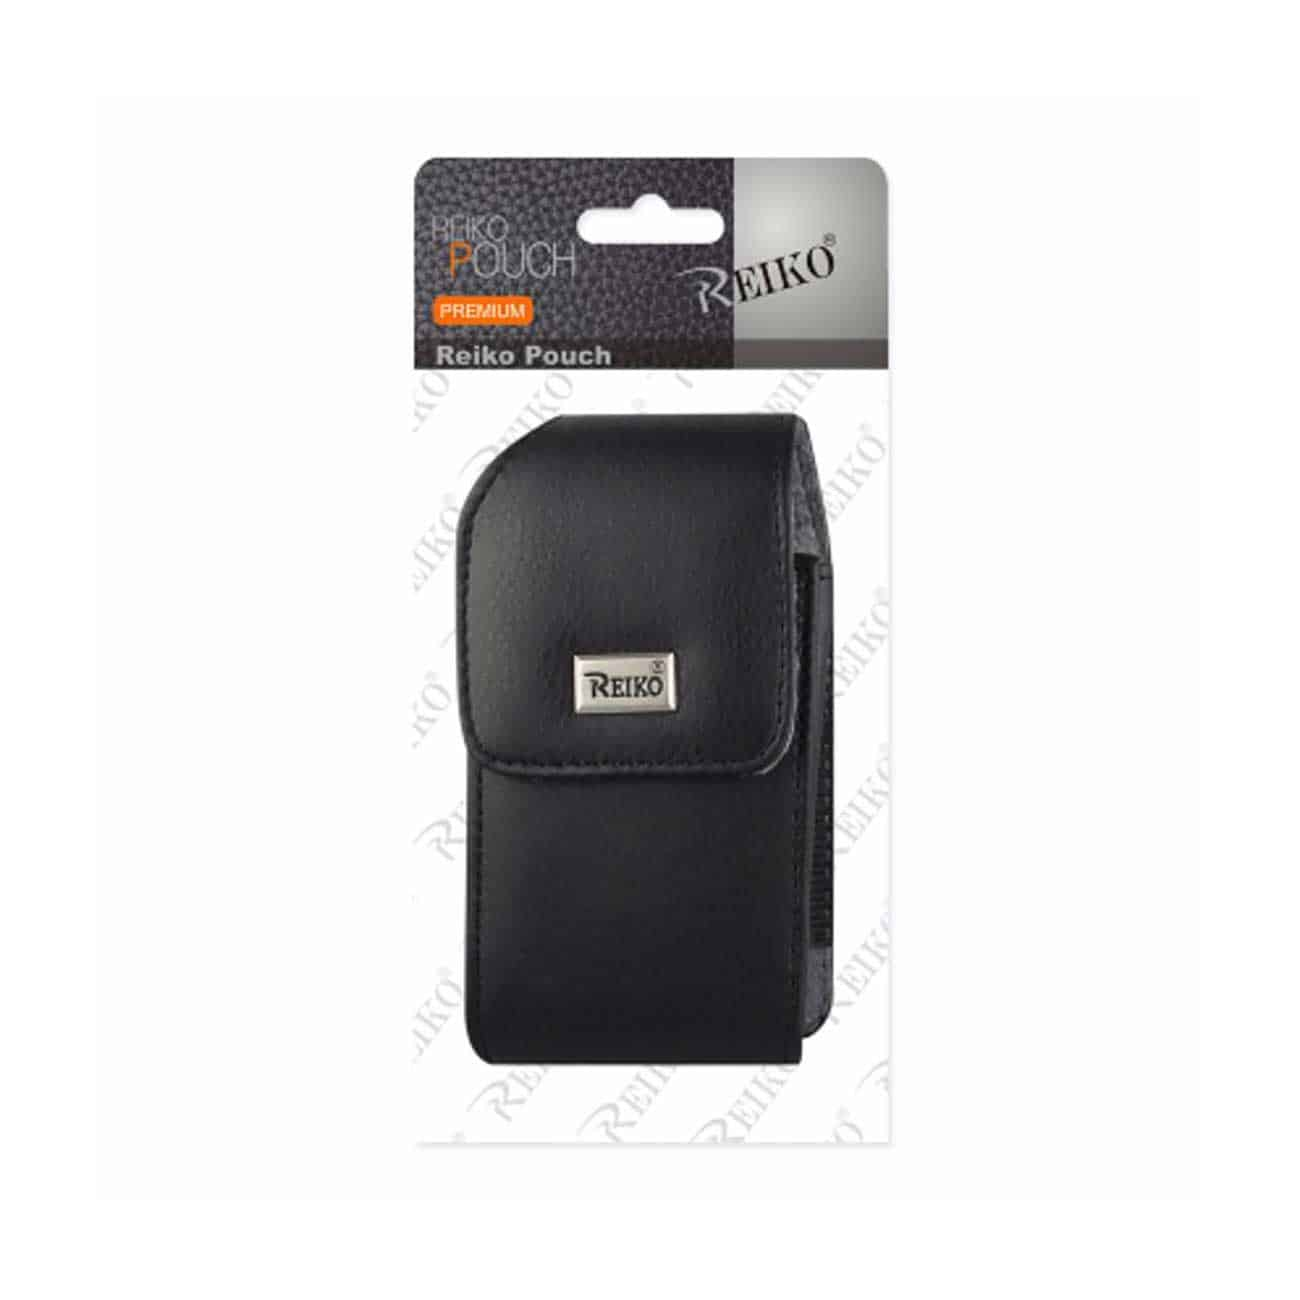 Leather Vertical Pouch With Metal Logo In Black (4.4X2.3X0.9 Inches)